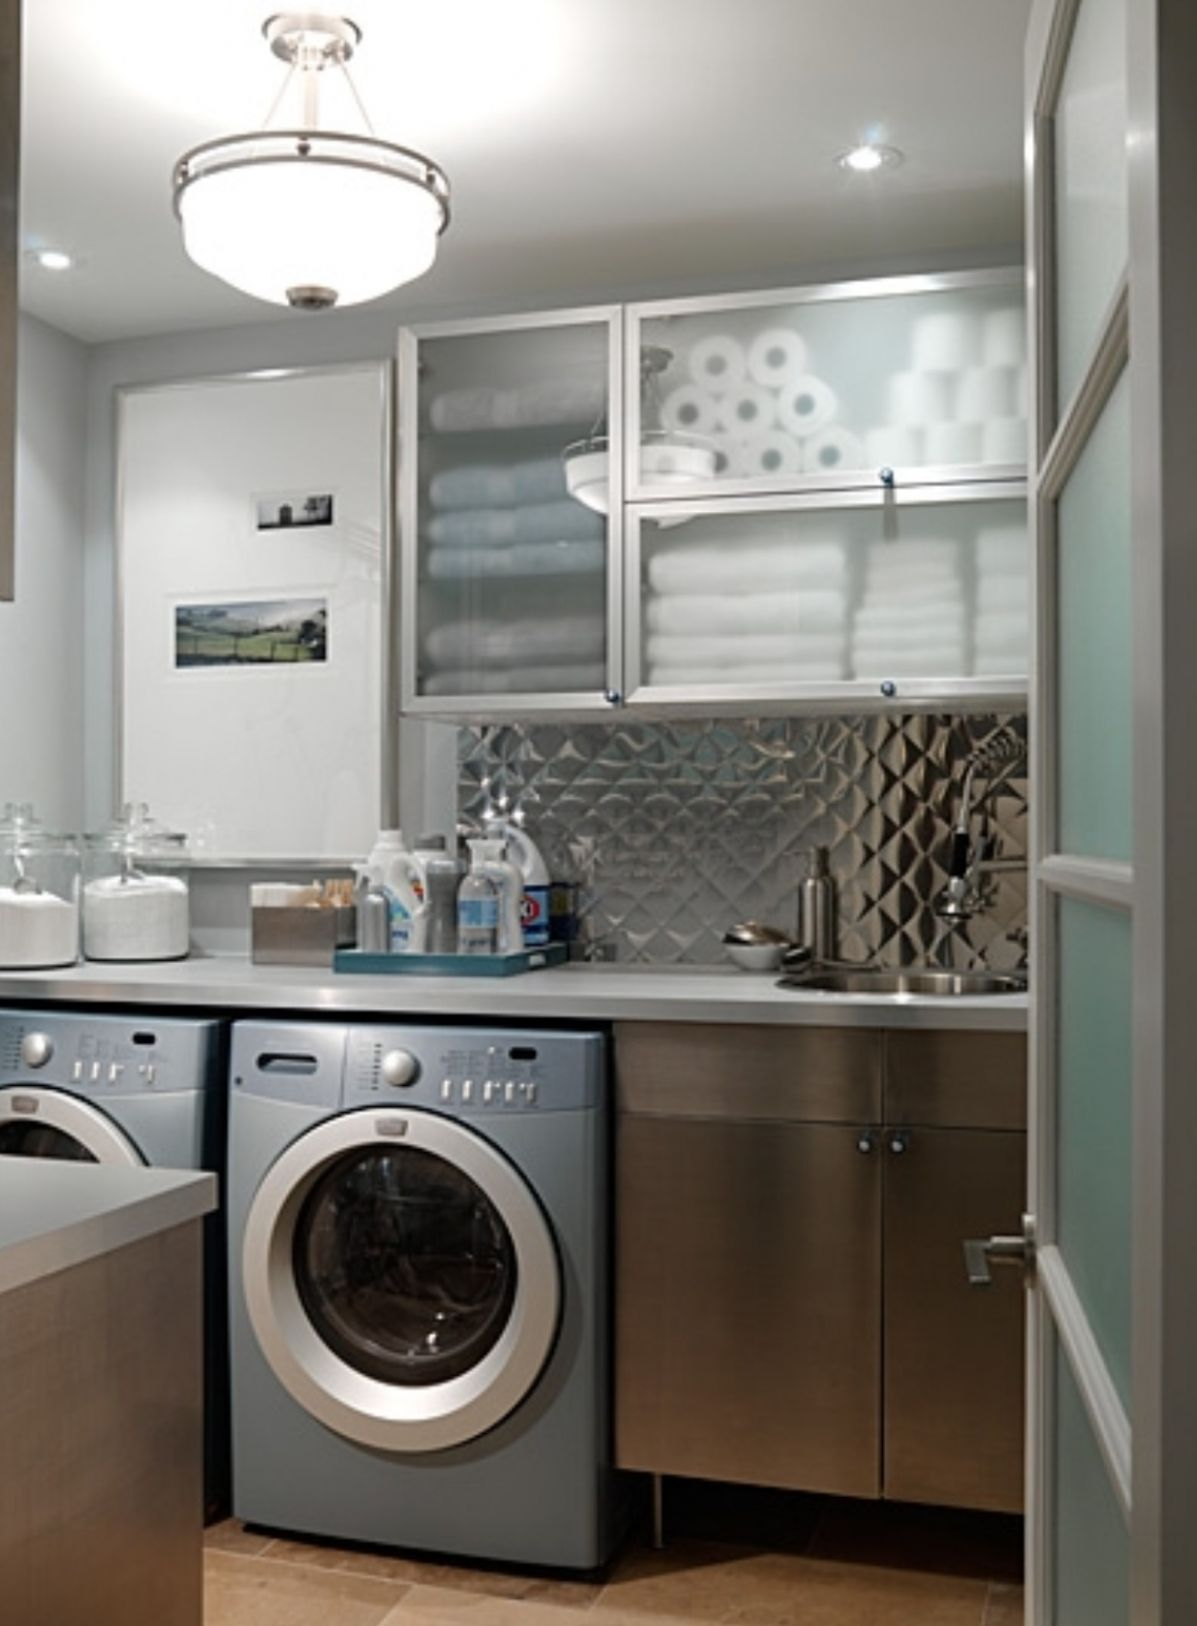 11 Best Laundry Room Design Ideas for 11 - laundry room bar ideas